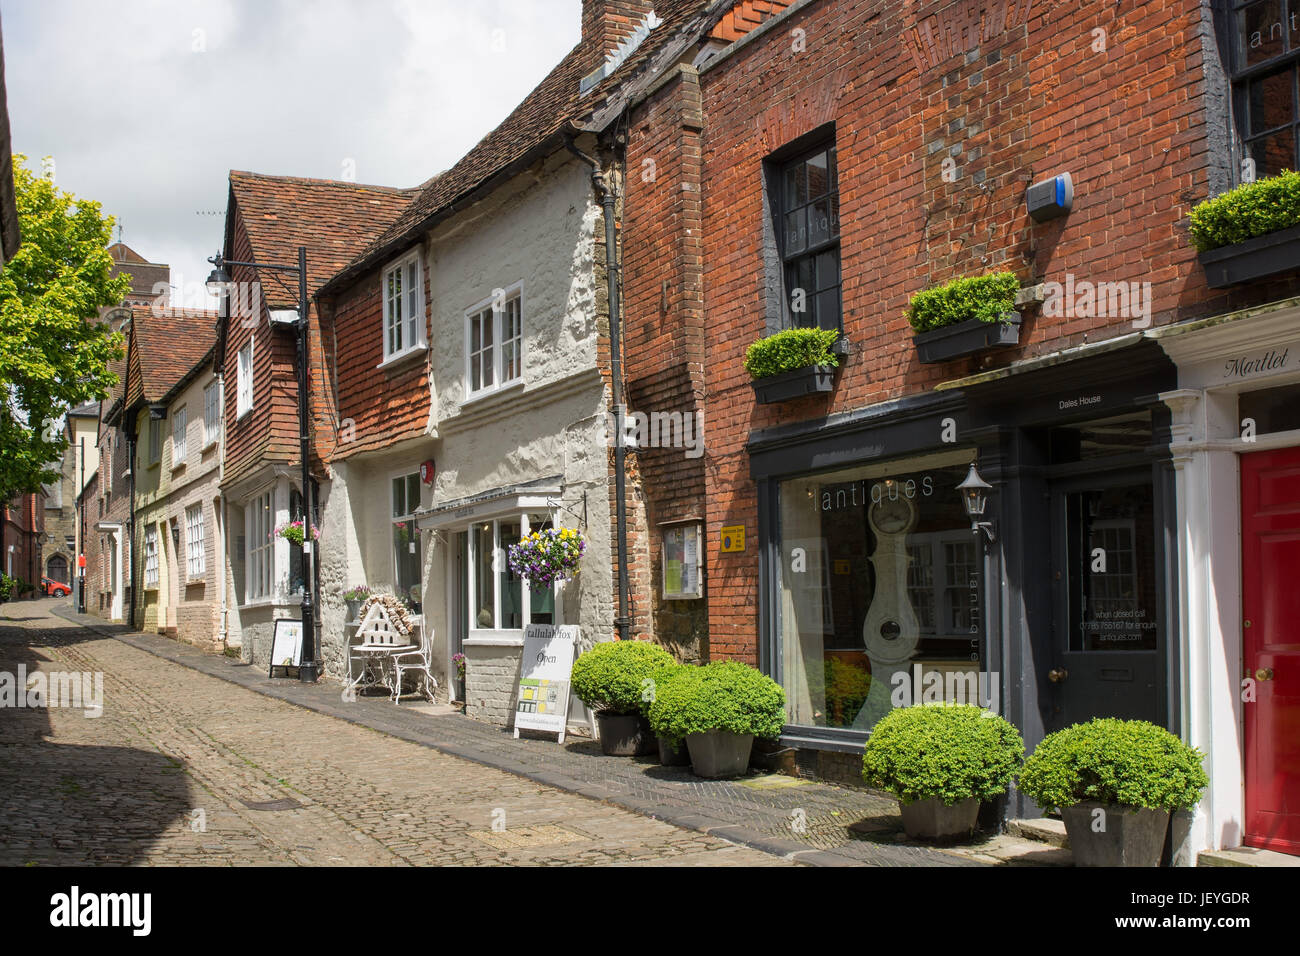 Narrow, cobbled Lombard Street in Petworth, West Sussex, England. With small shops and no people. - Stock Image